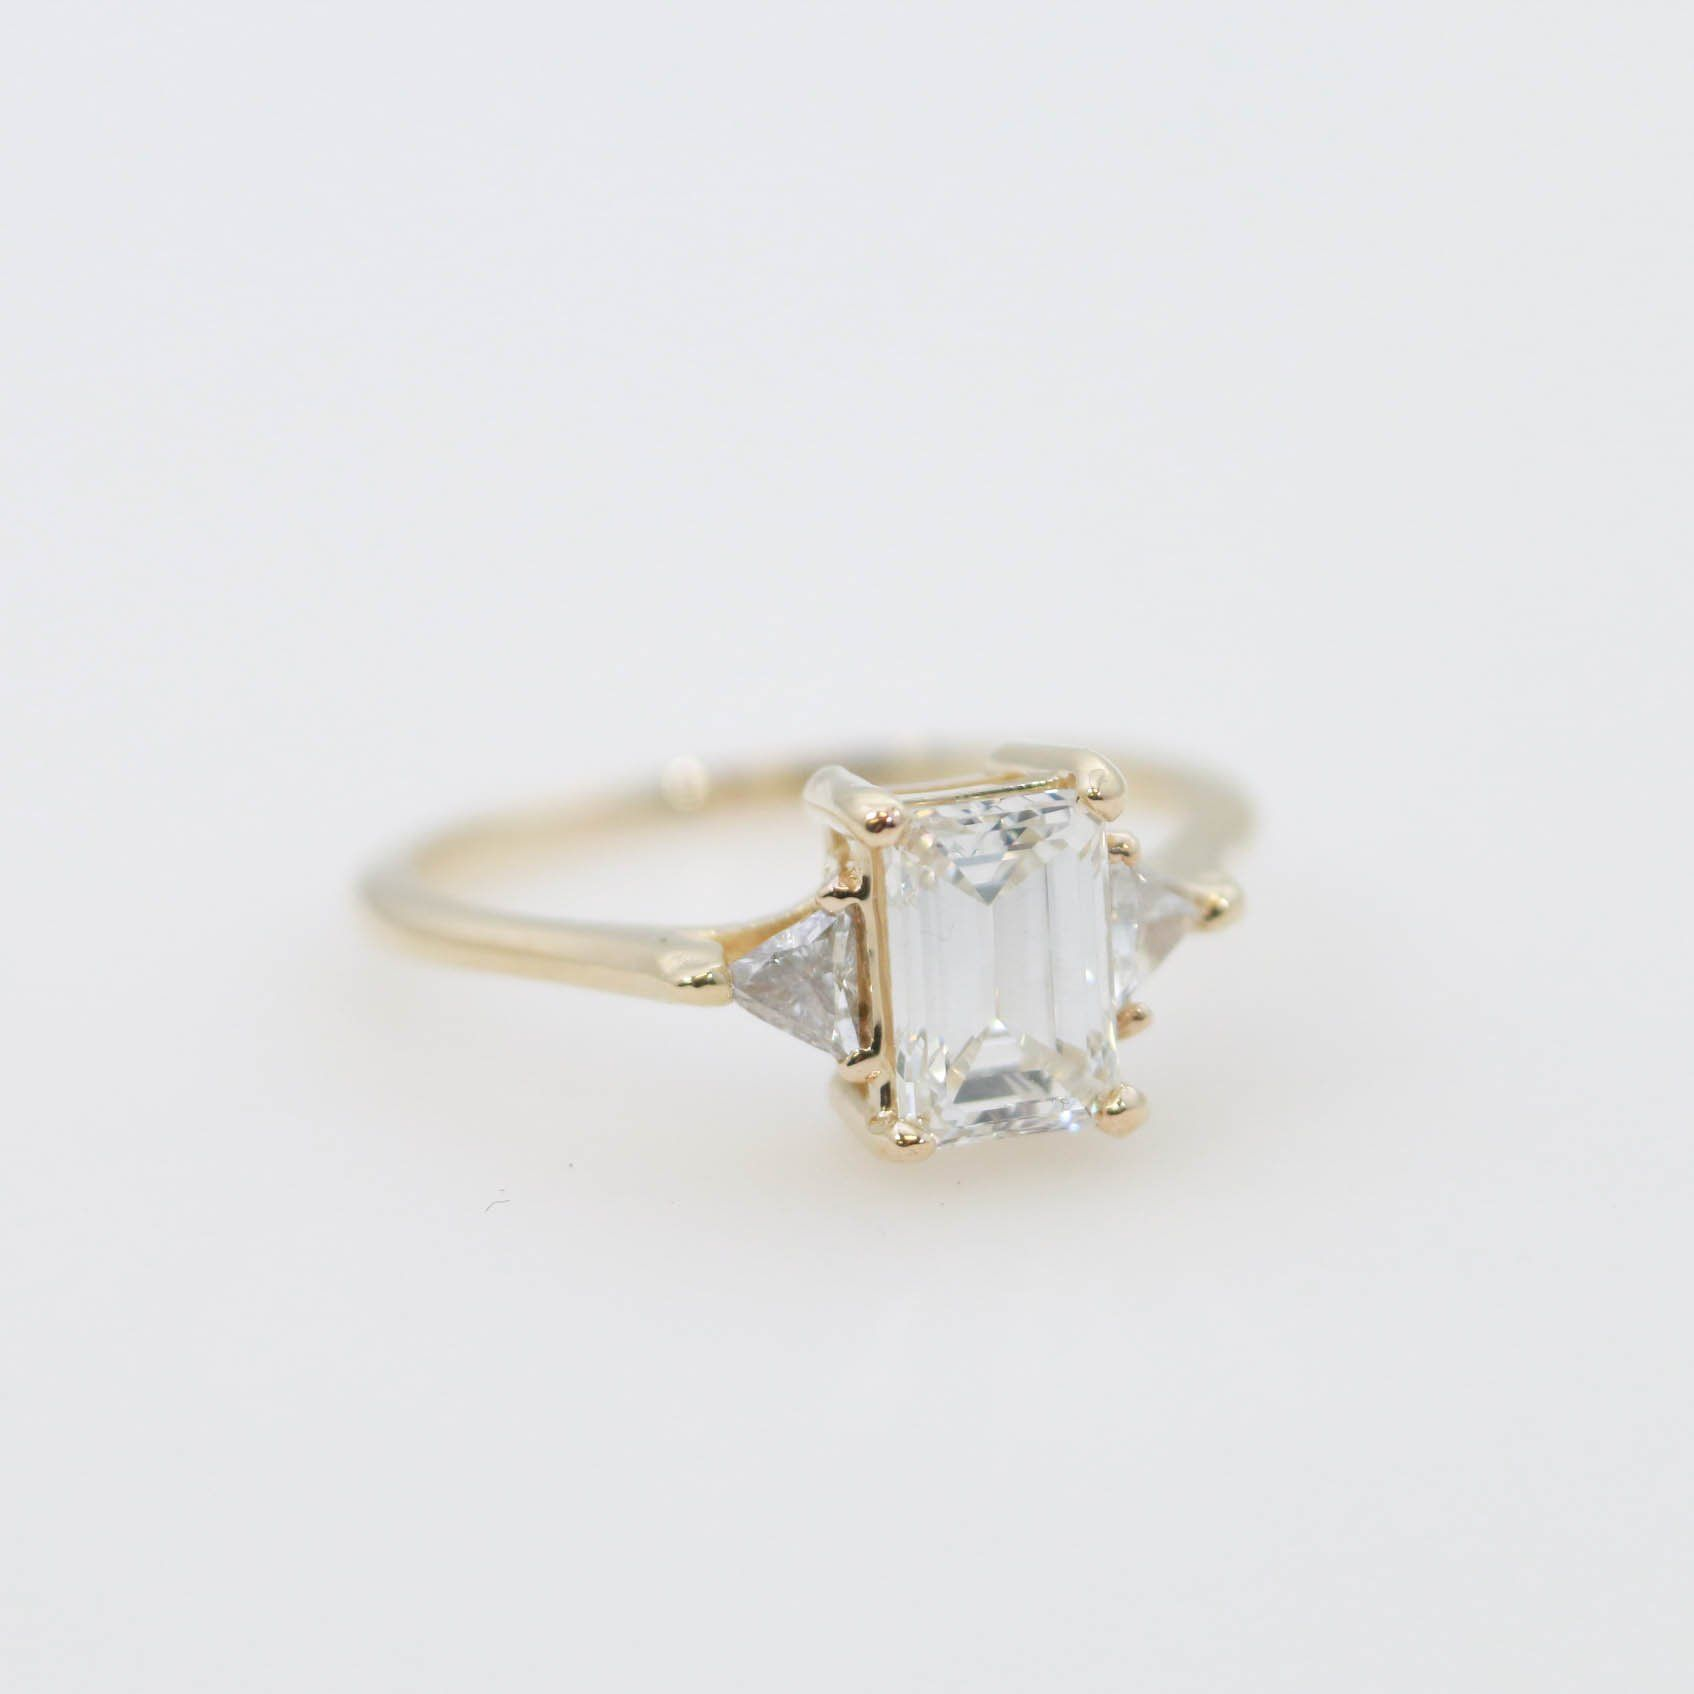 idei pin inele descoper megan saul by logodn photographed rings wedding de mociun ring despre engagement